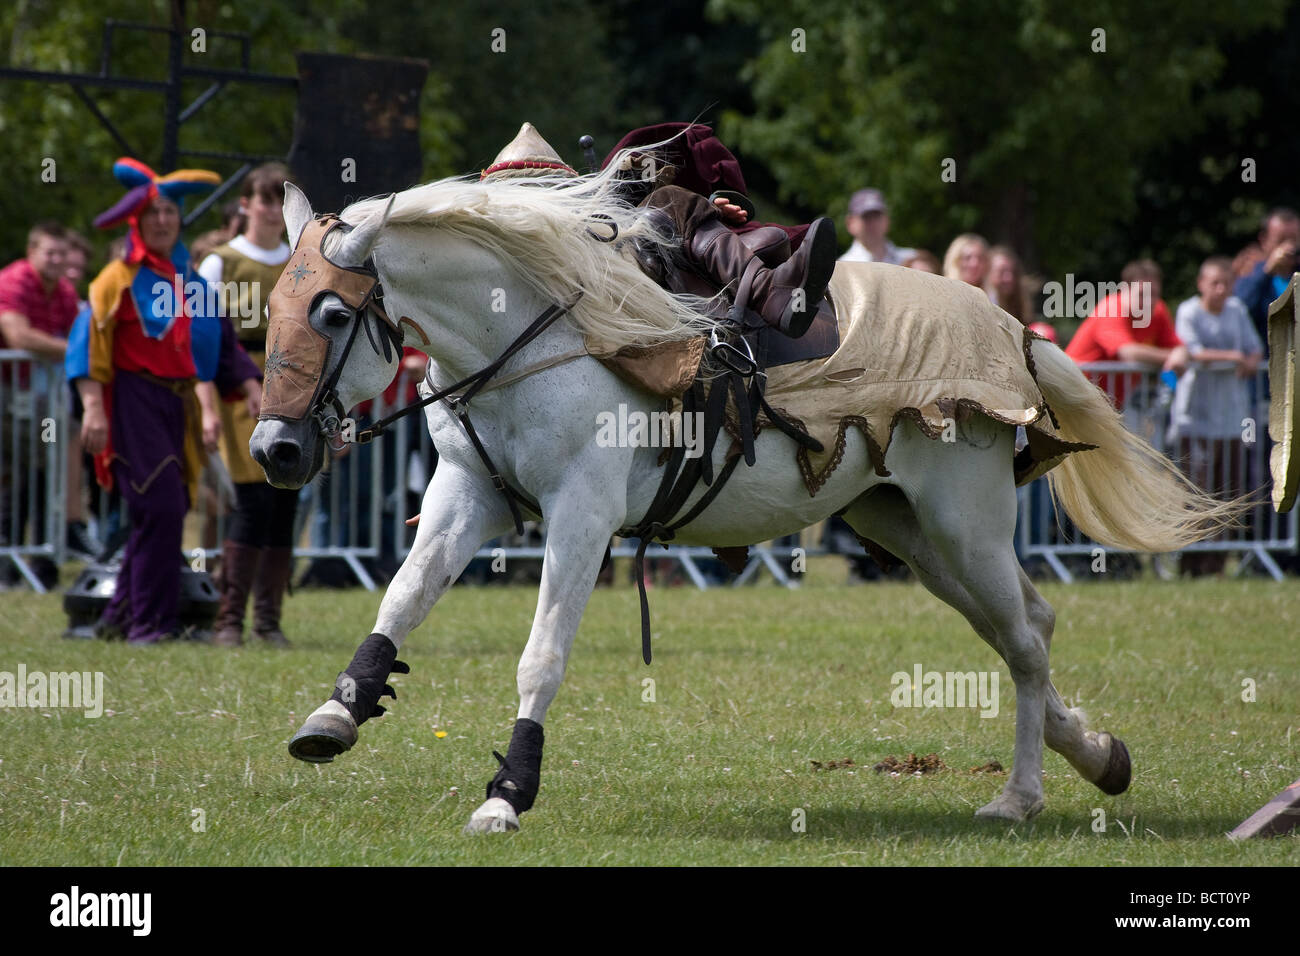 Unmounted Thrown Arab Knight Joust Medieval Horse Lambeth Country Stock Photo Alamy